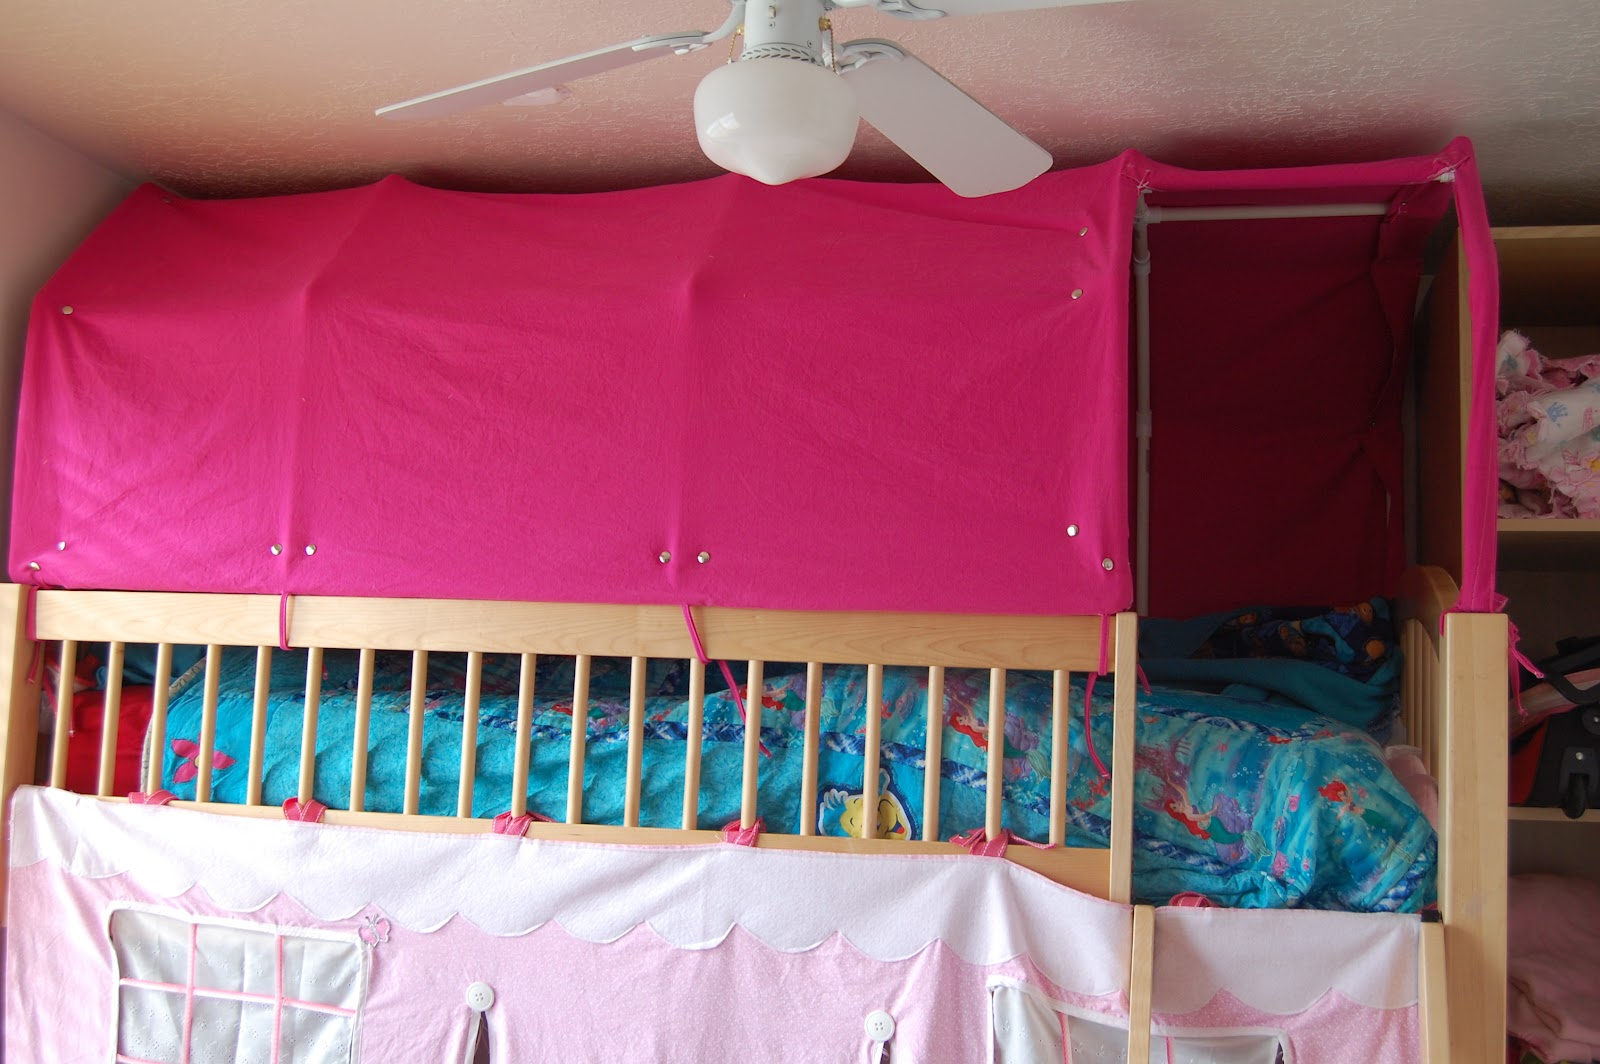 Everyone's Excited and Confused: Pictures of the Top Bunk ...